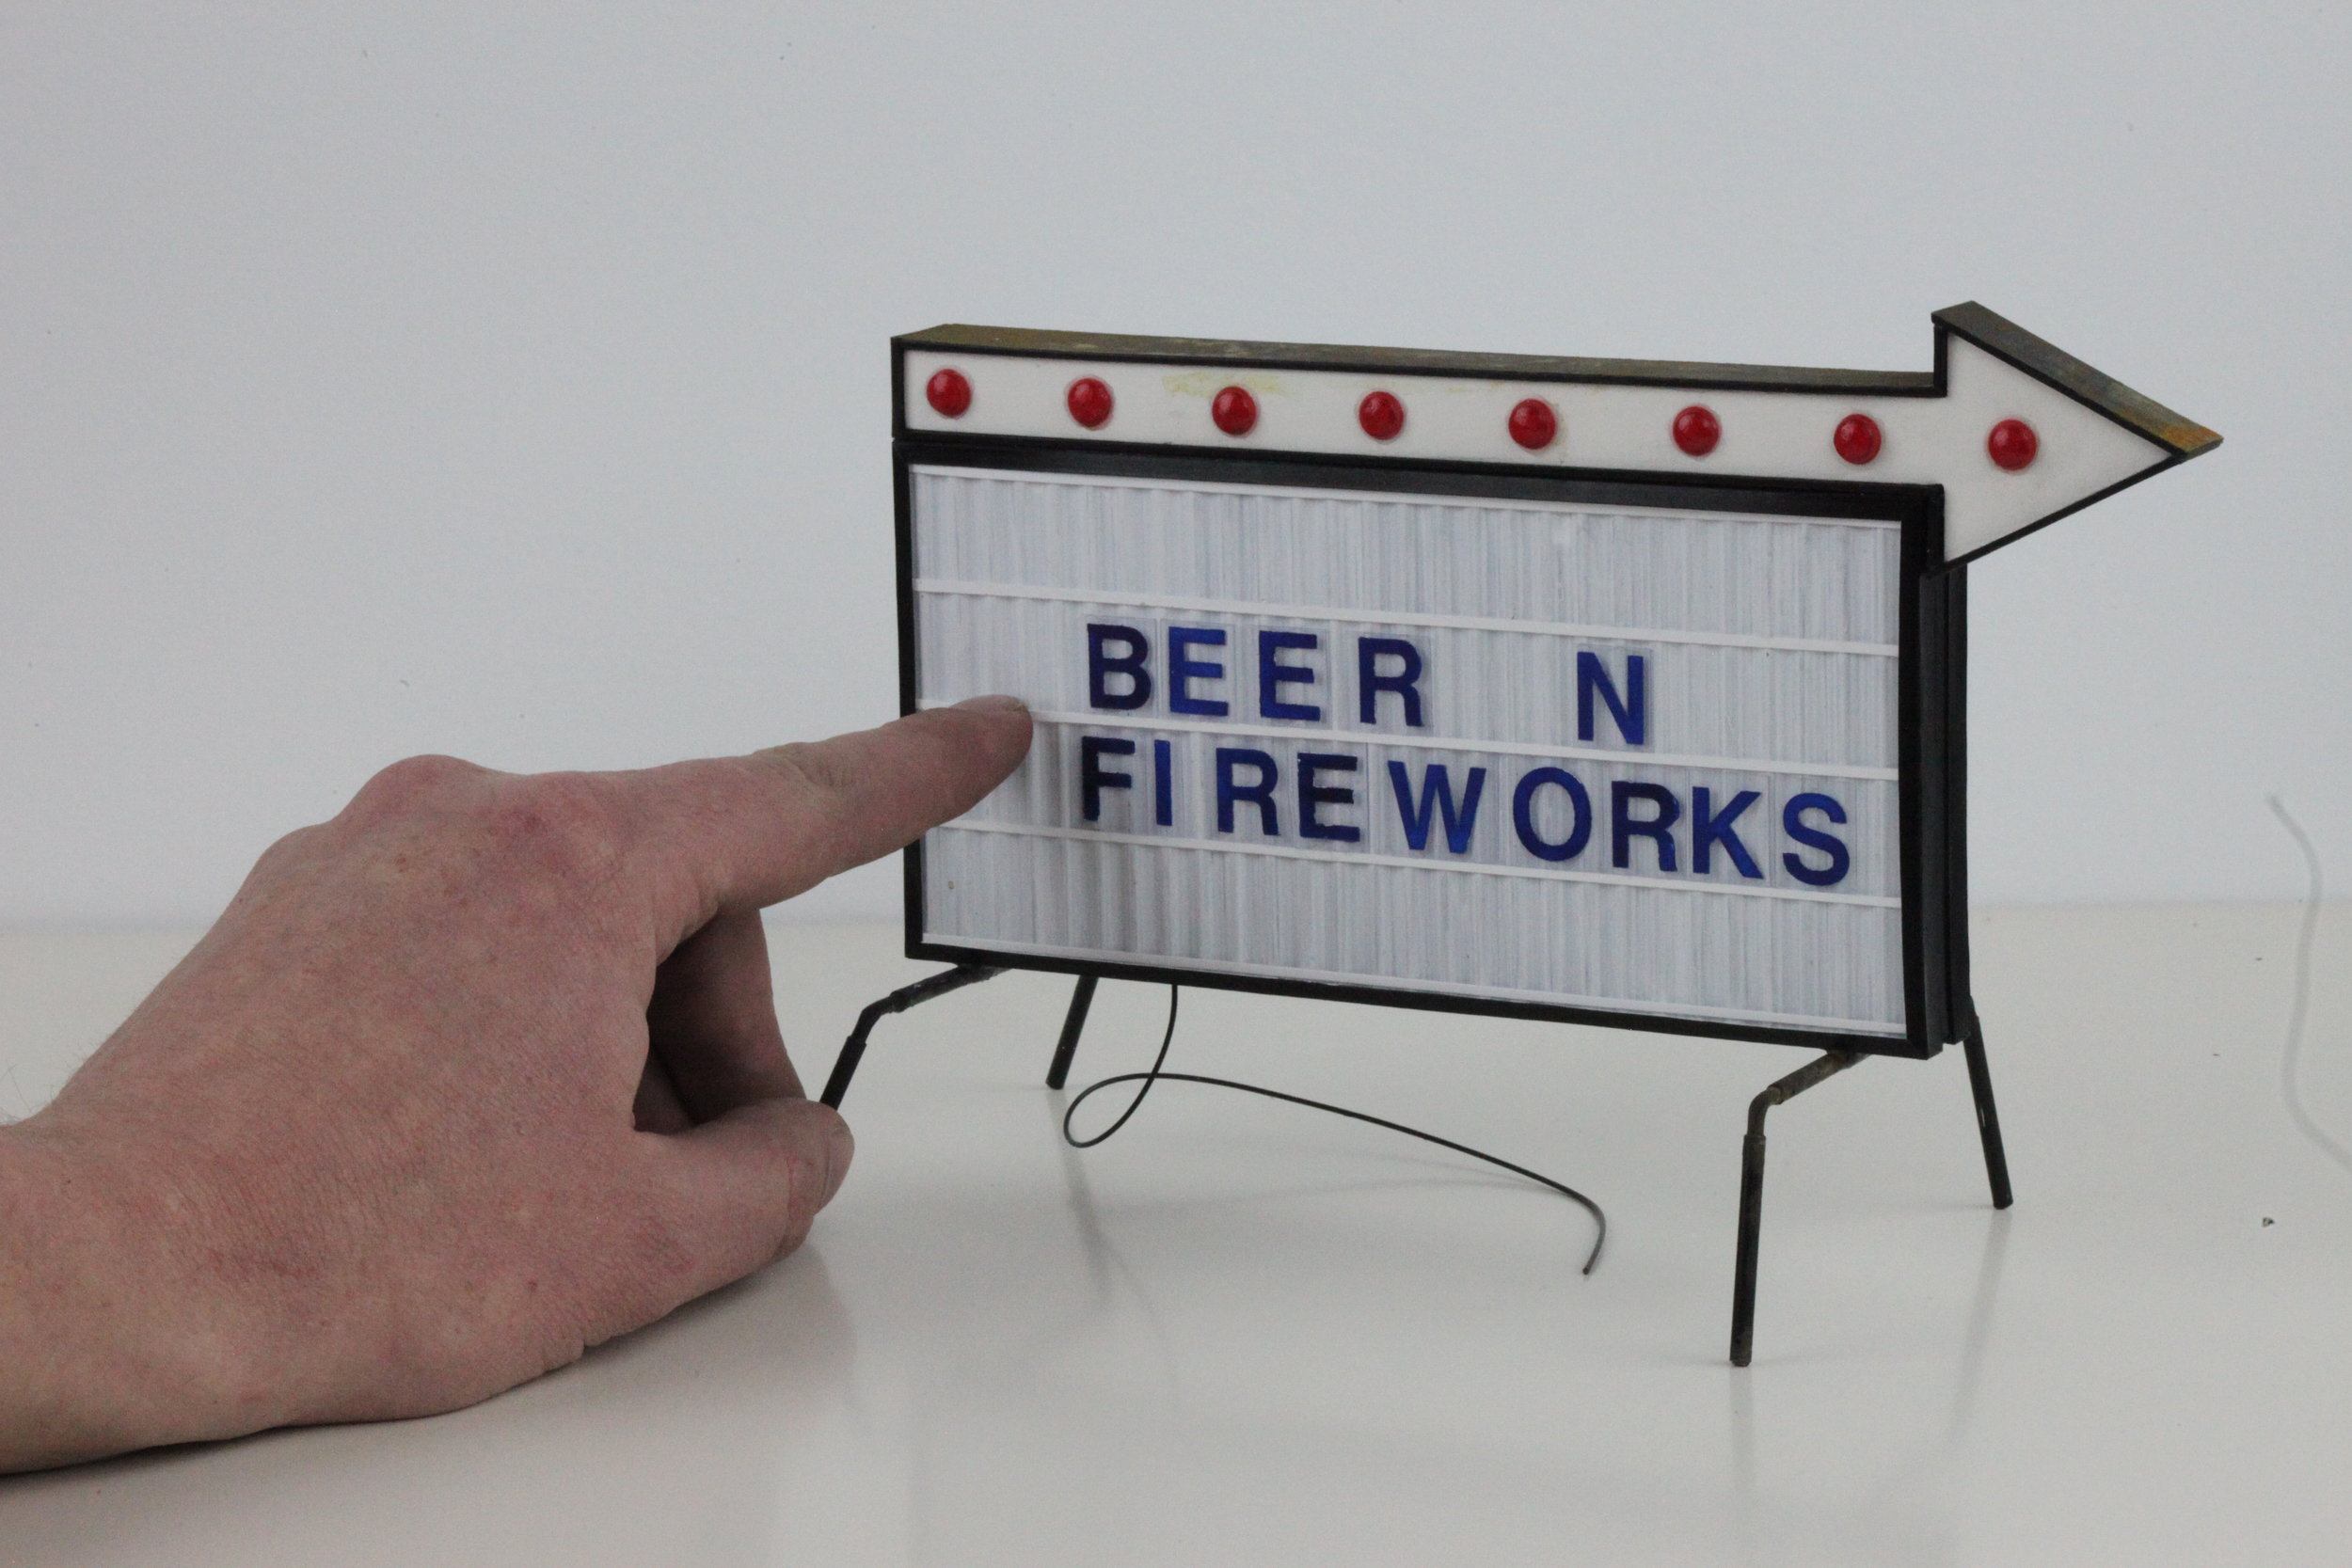 Beer and Fireworks